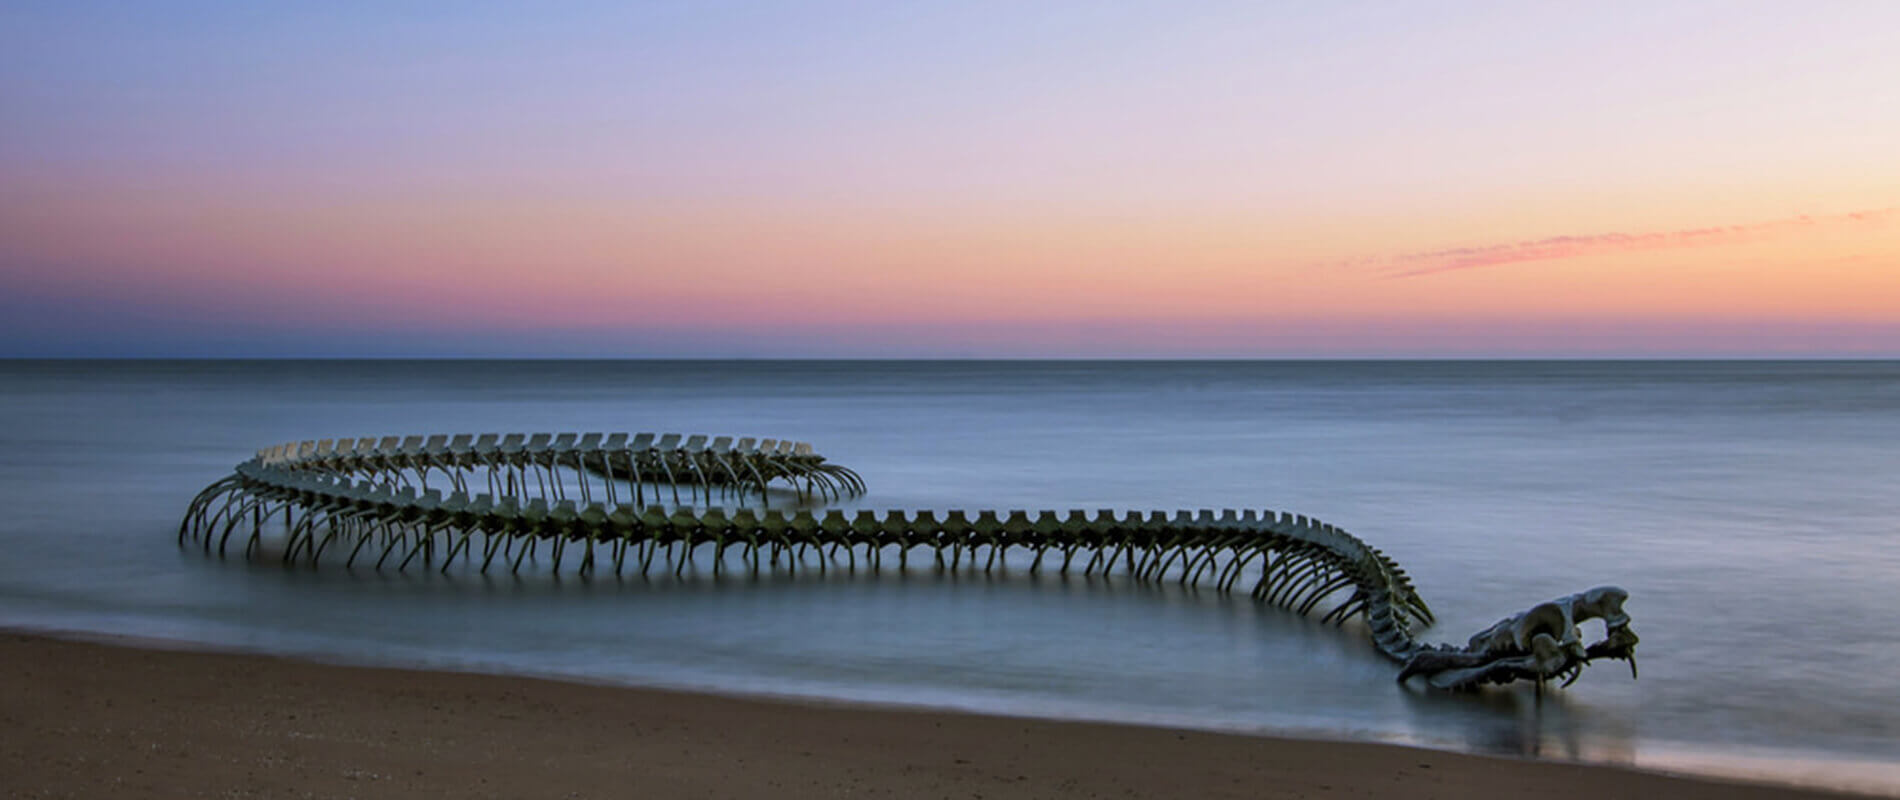 Serpent d'Océan, a Gigantic Snake Skeleton That Plays with the Tides